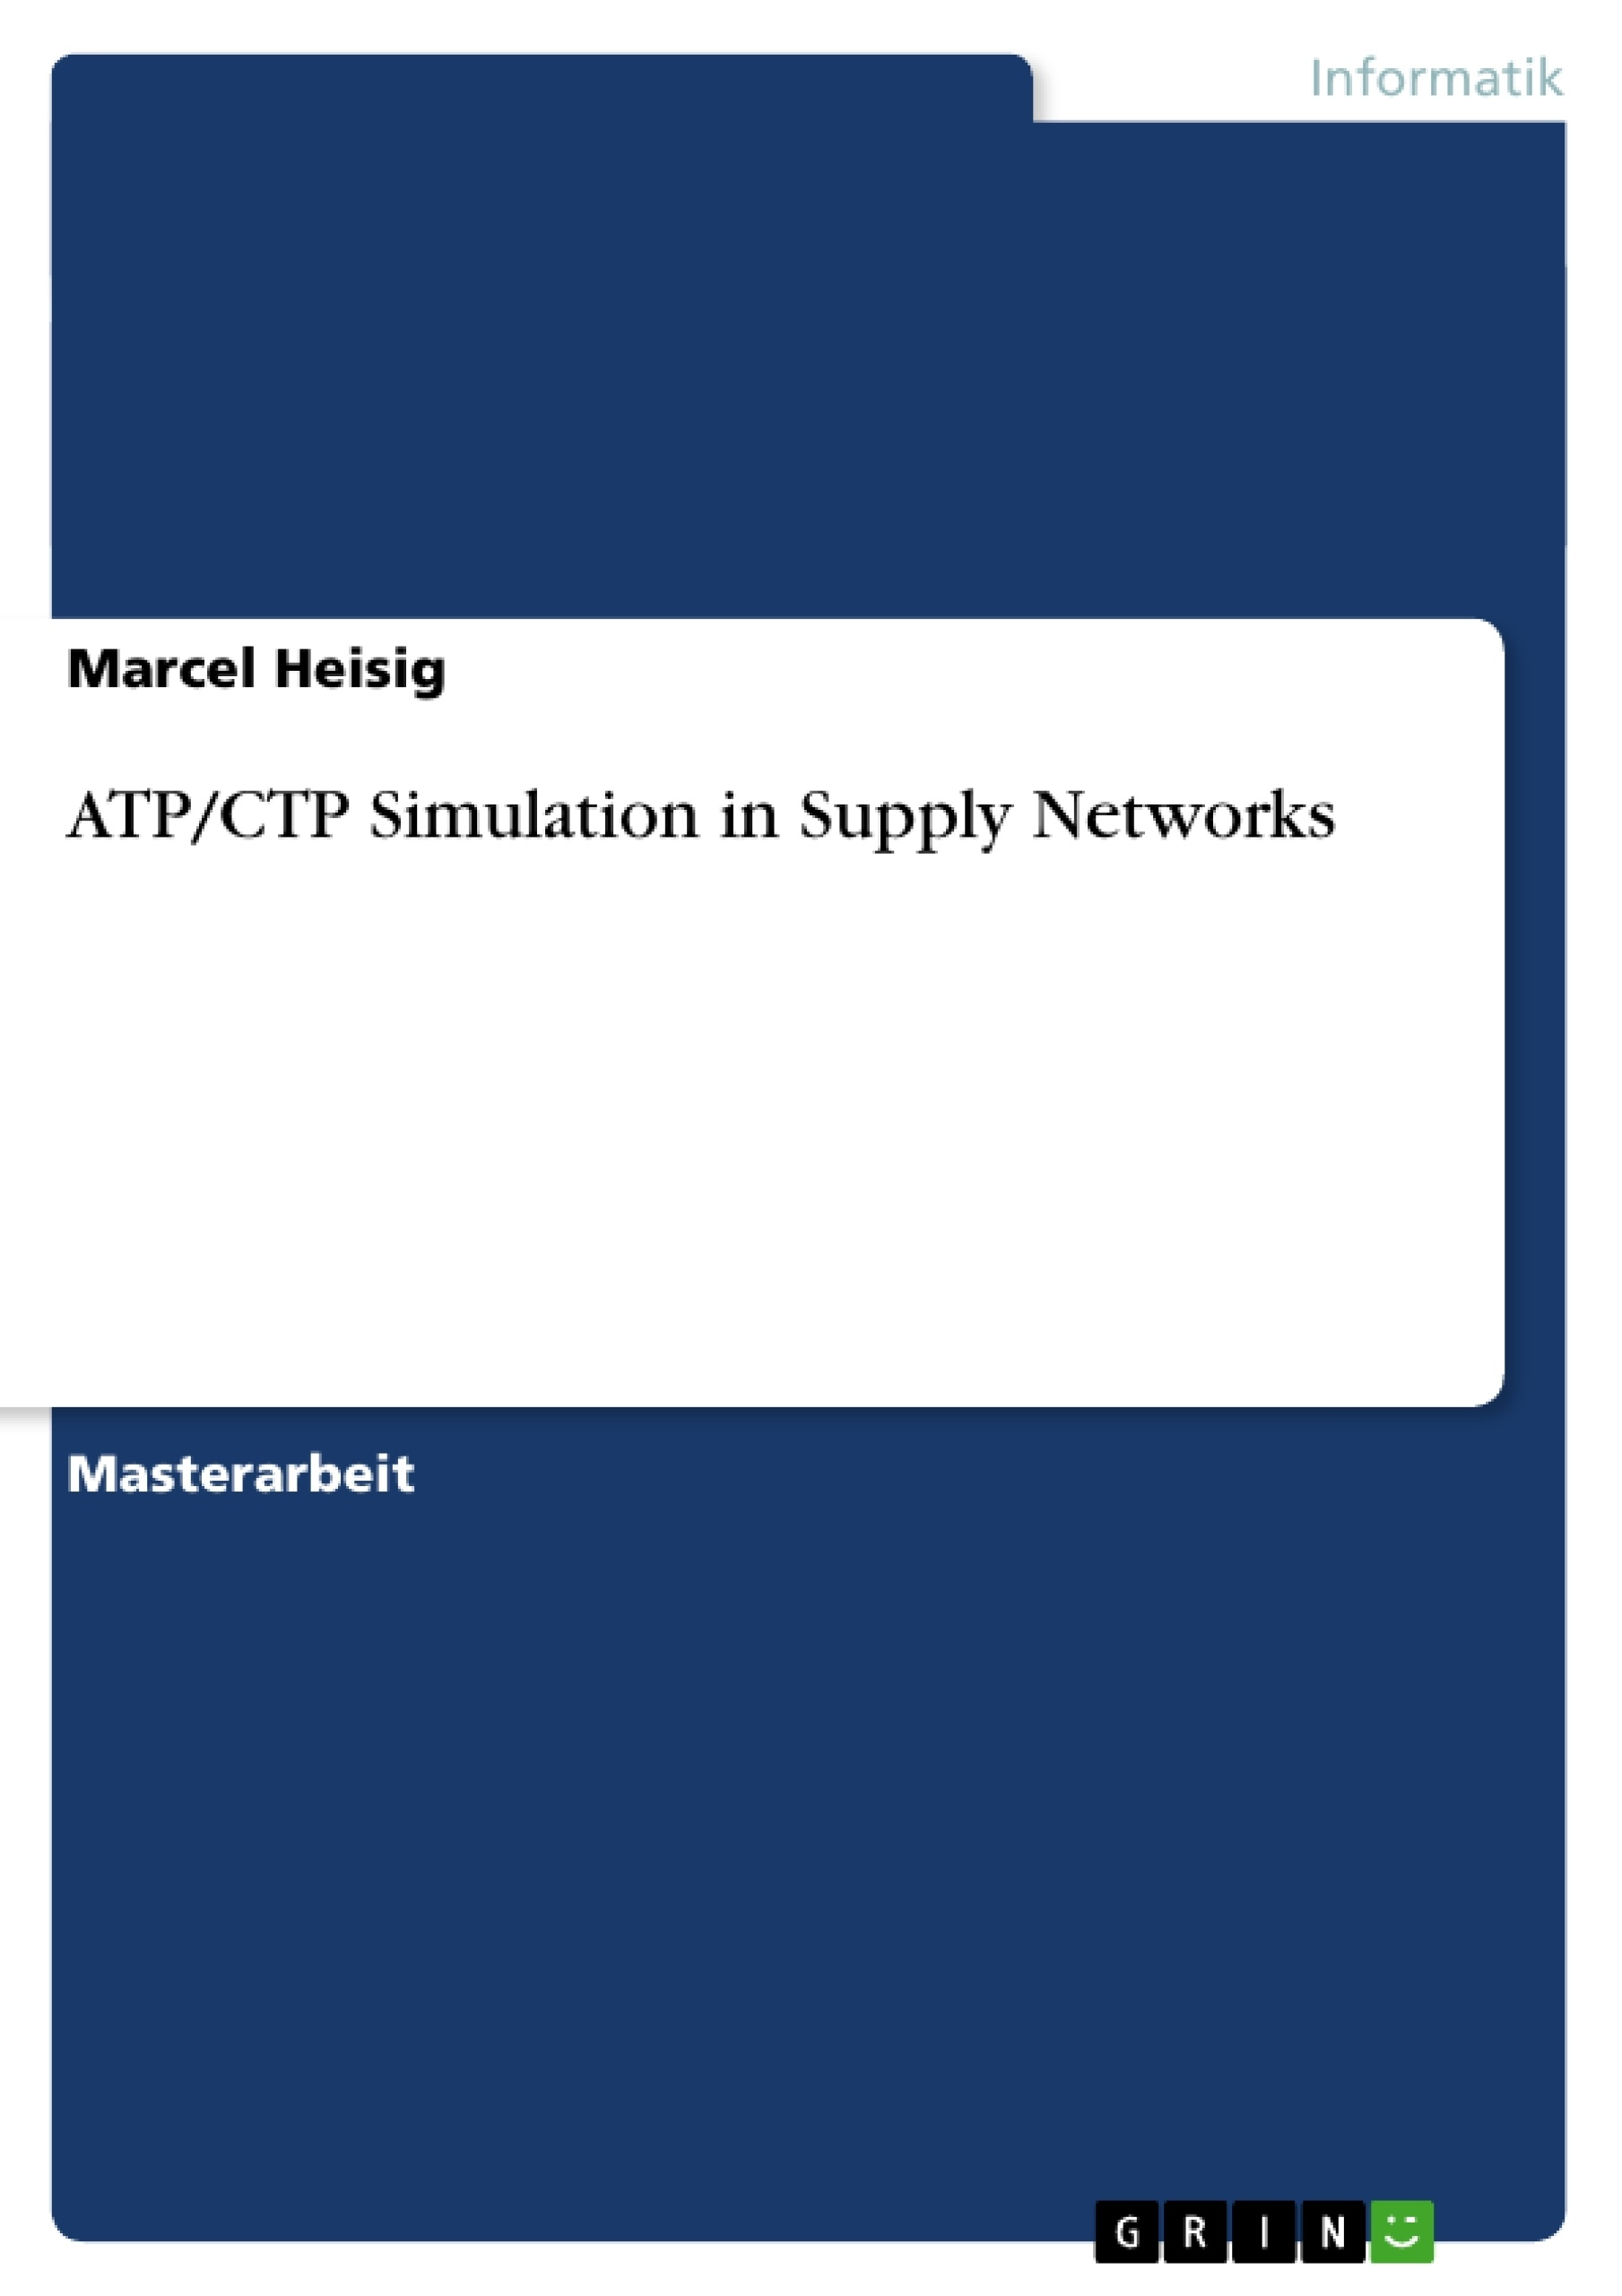 Titel: ATP/CTP Simulation in Supply Networks